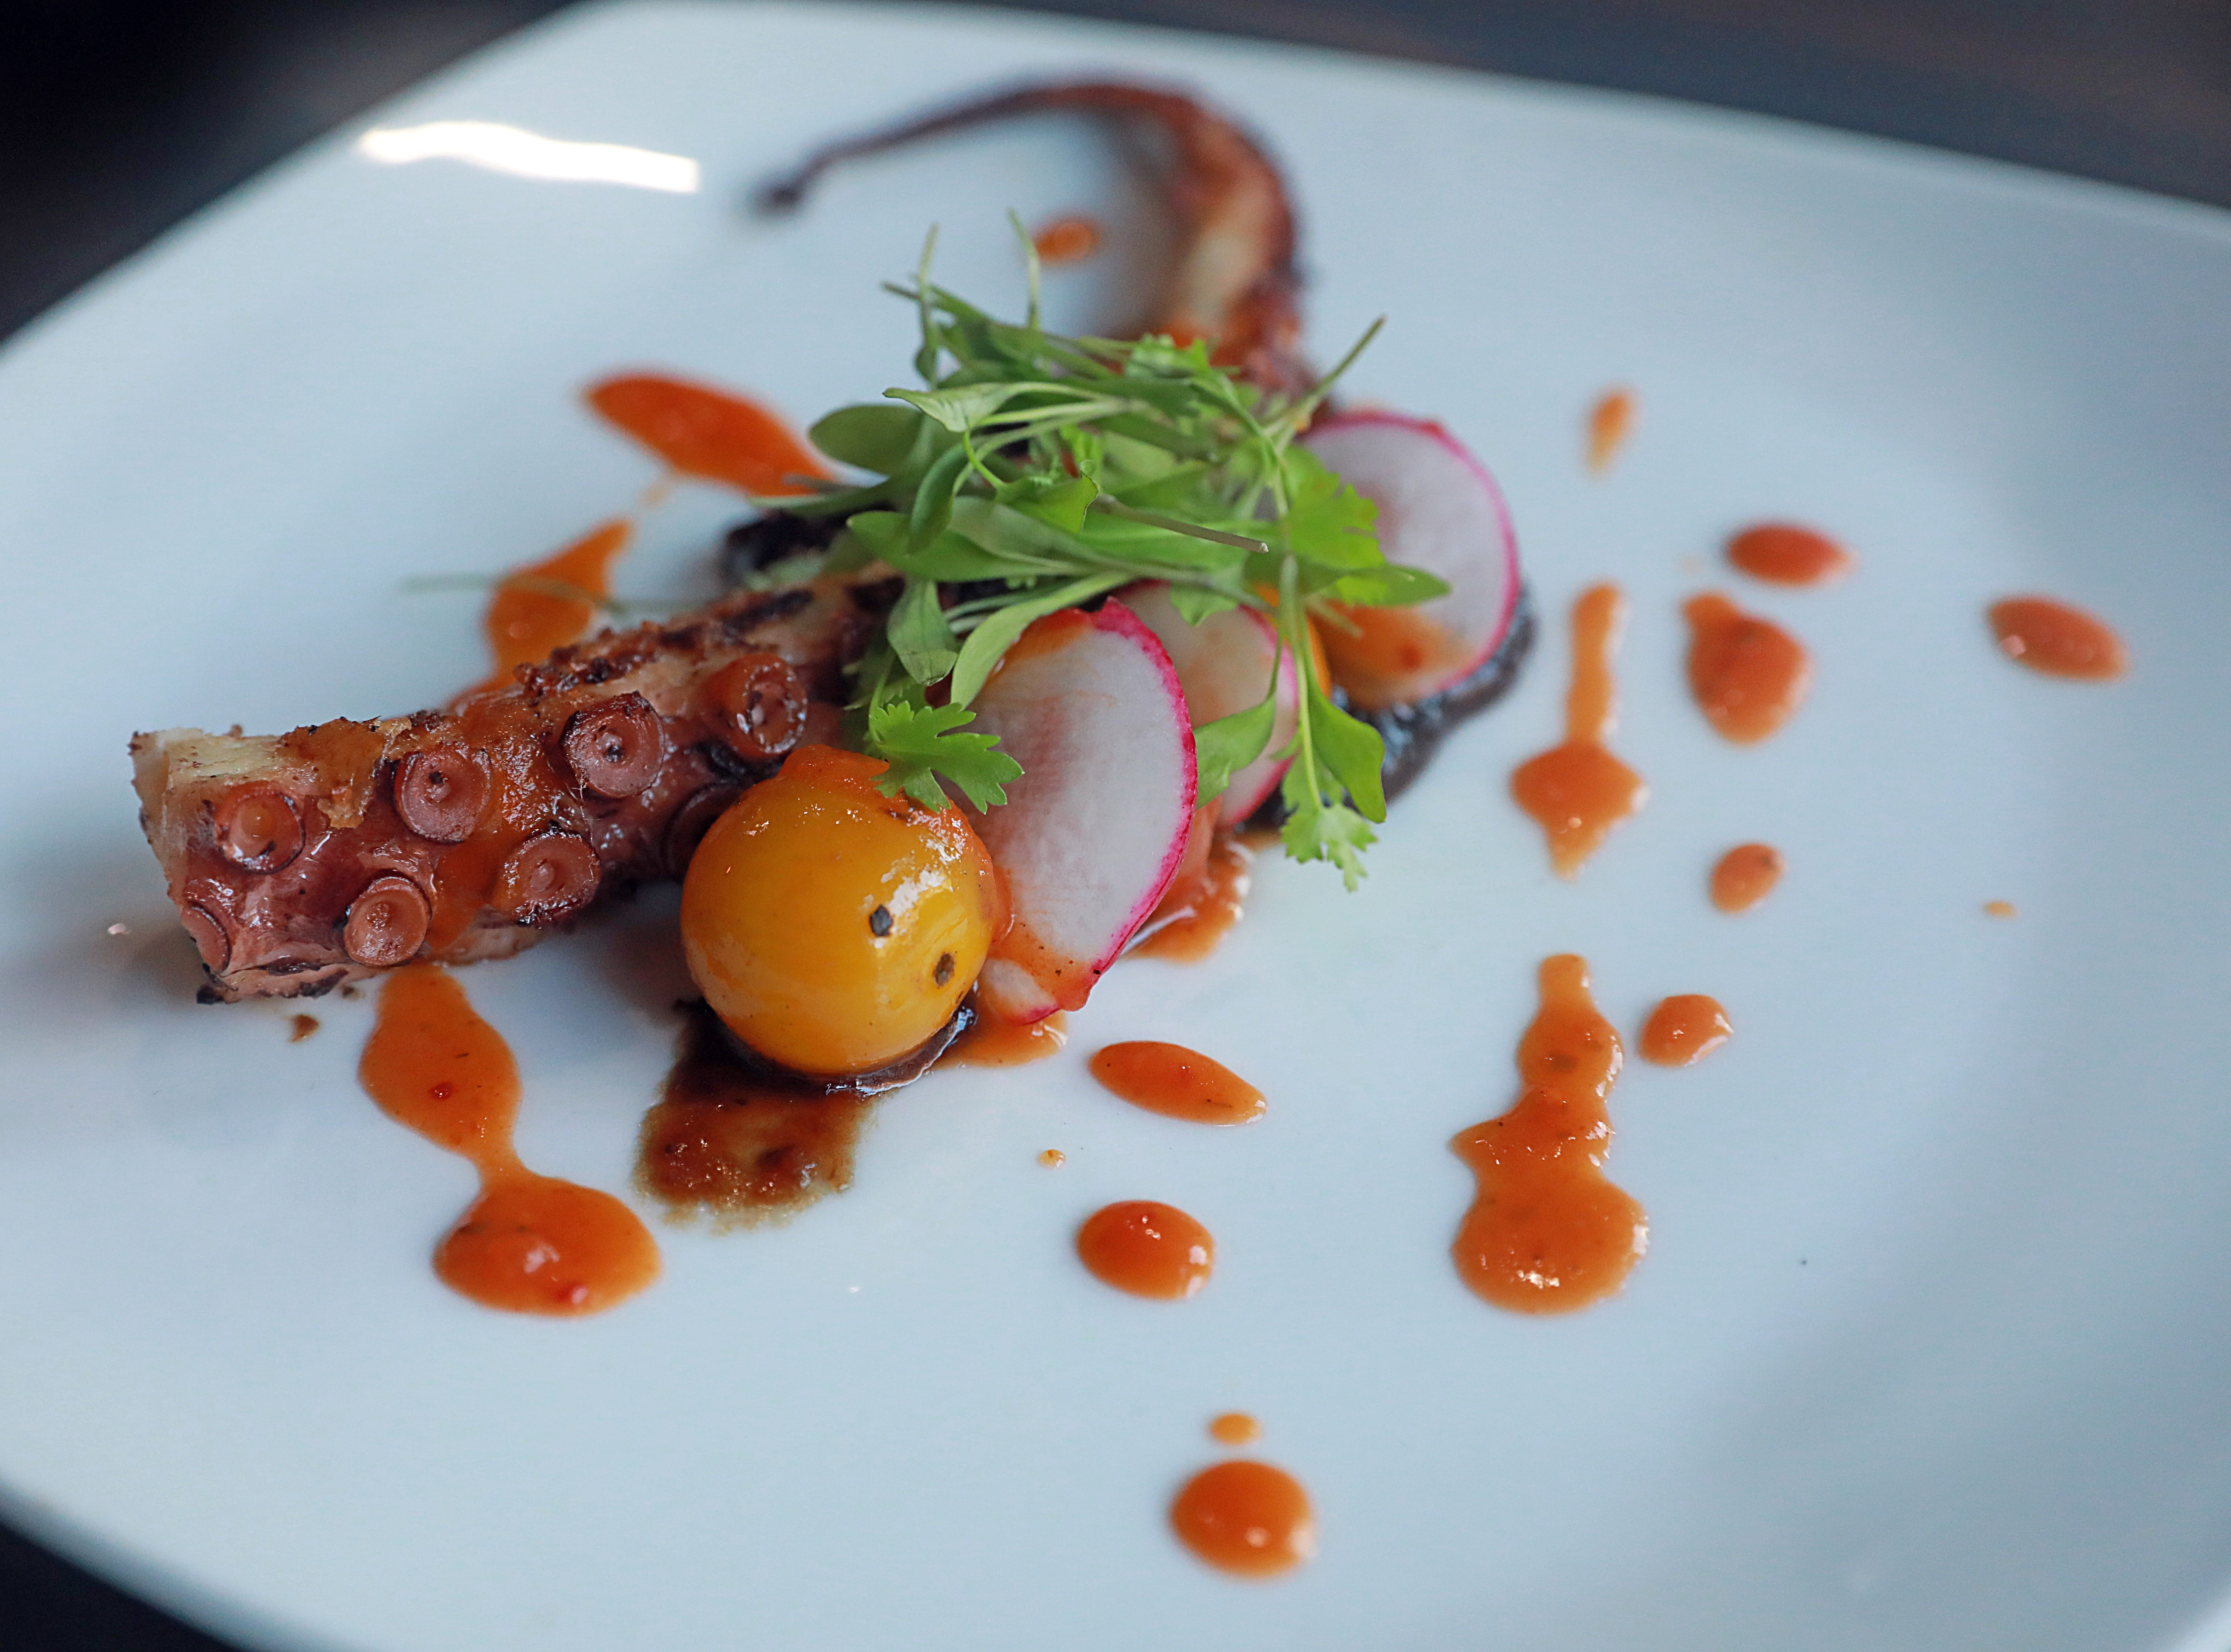 CARUCHA L. MEUSE: Pulpo a la plancha is crisp octopus, burst tomato, balsamic onion jam and red chili salsa is served during dinner with Jeanne at DonJito  in Mamaroneck July 26, 2018.